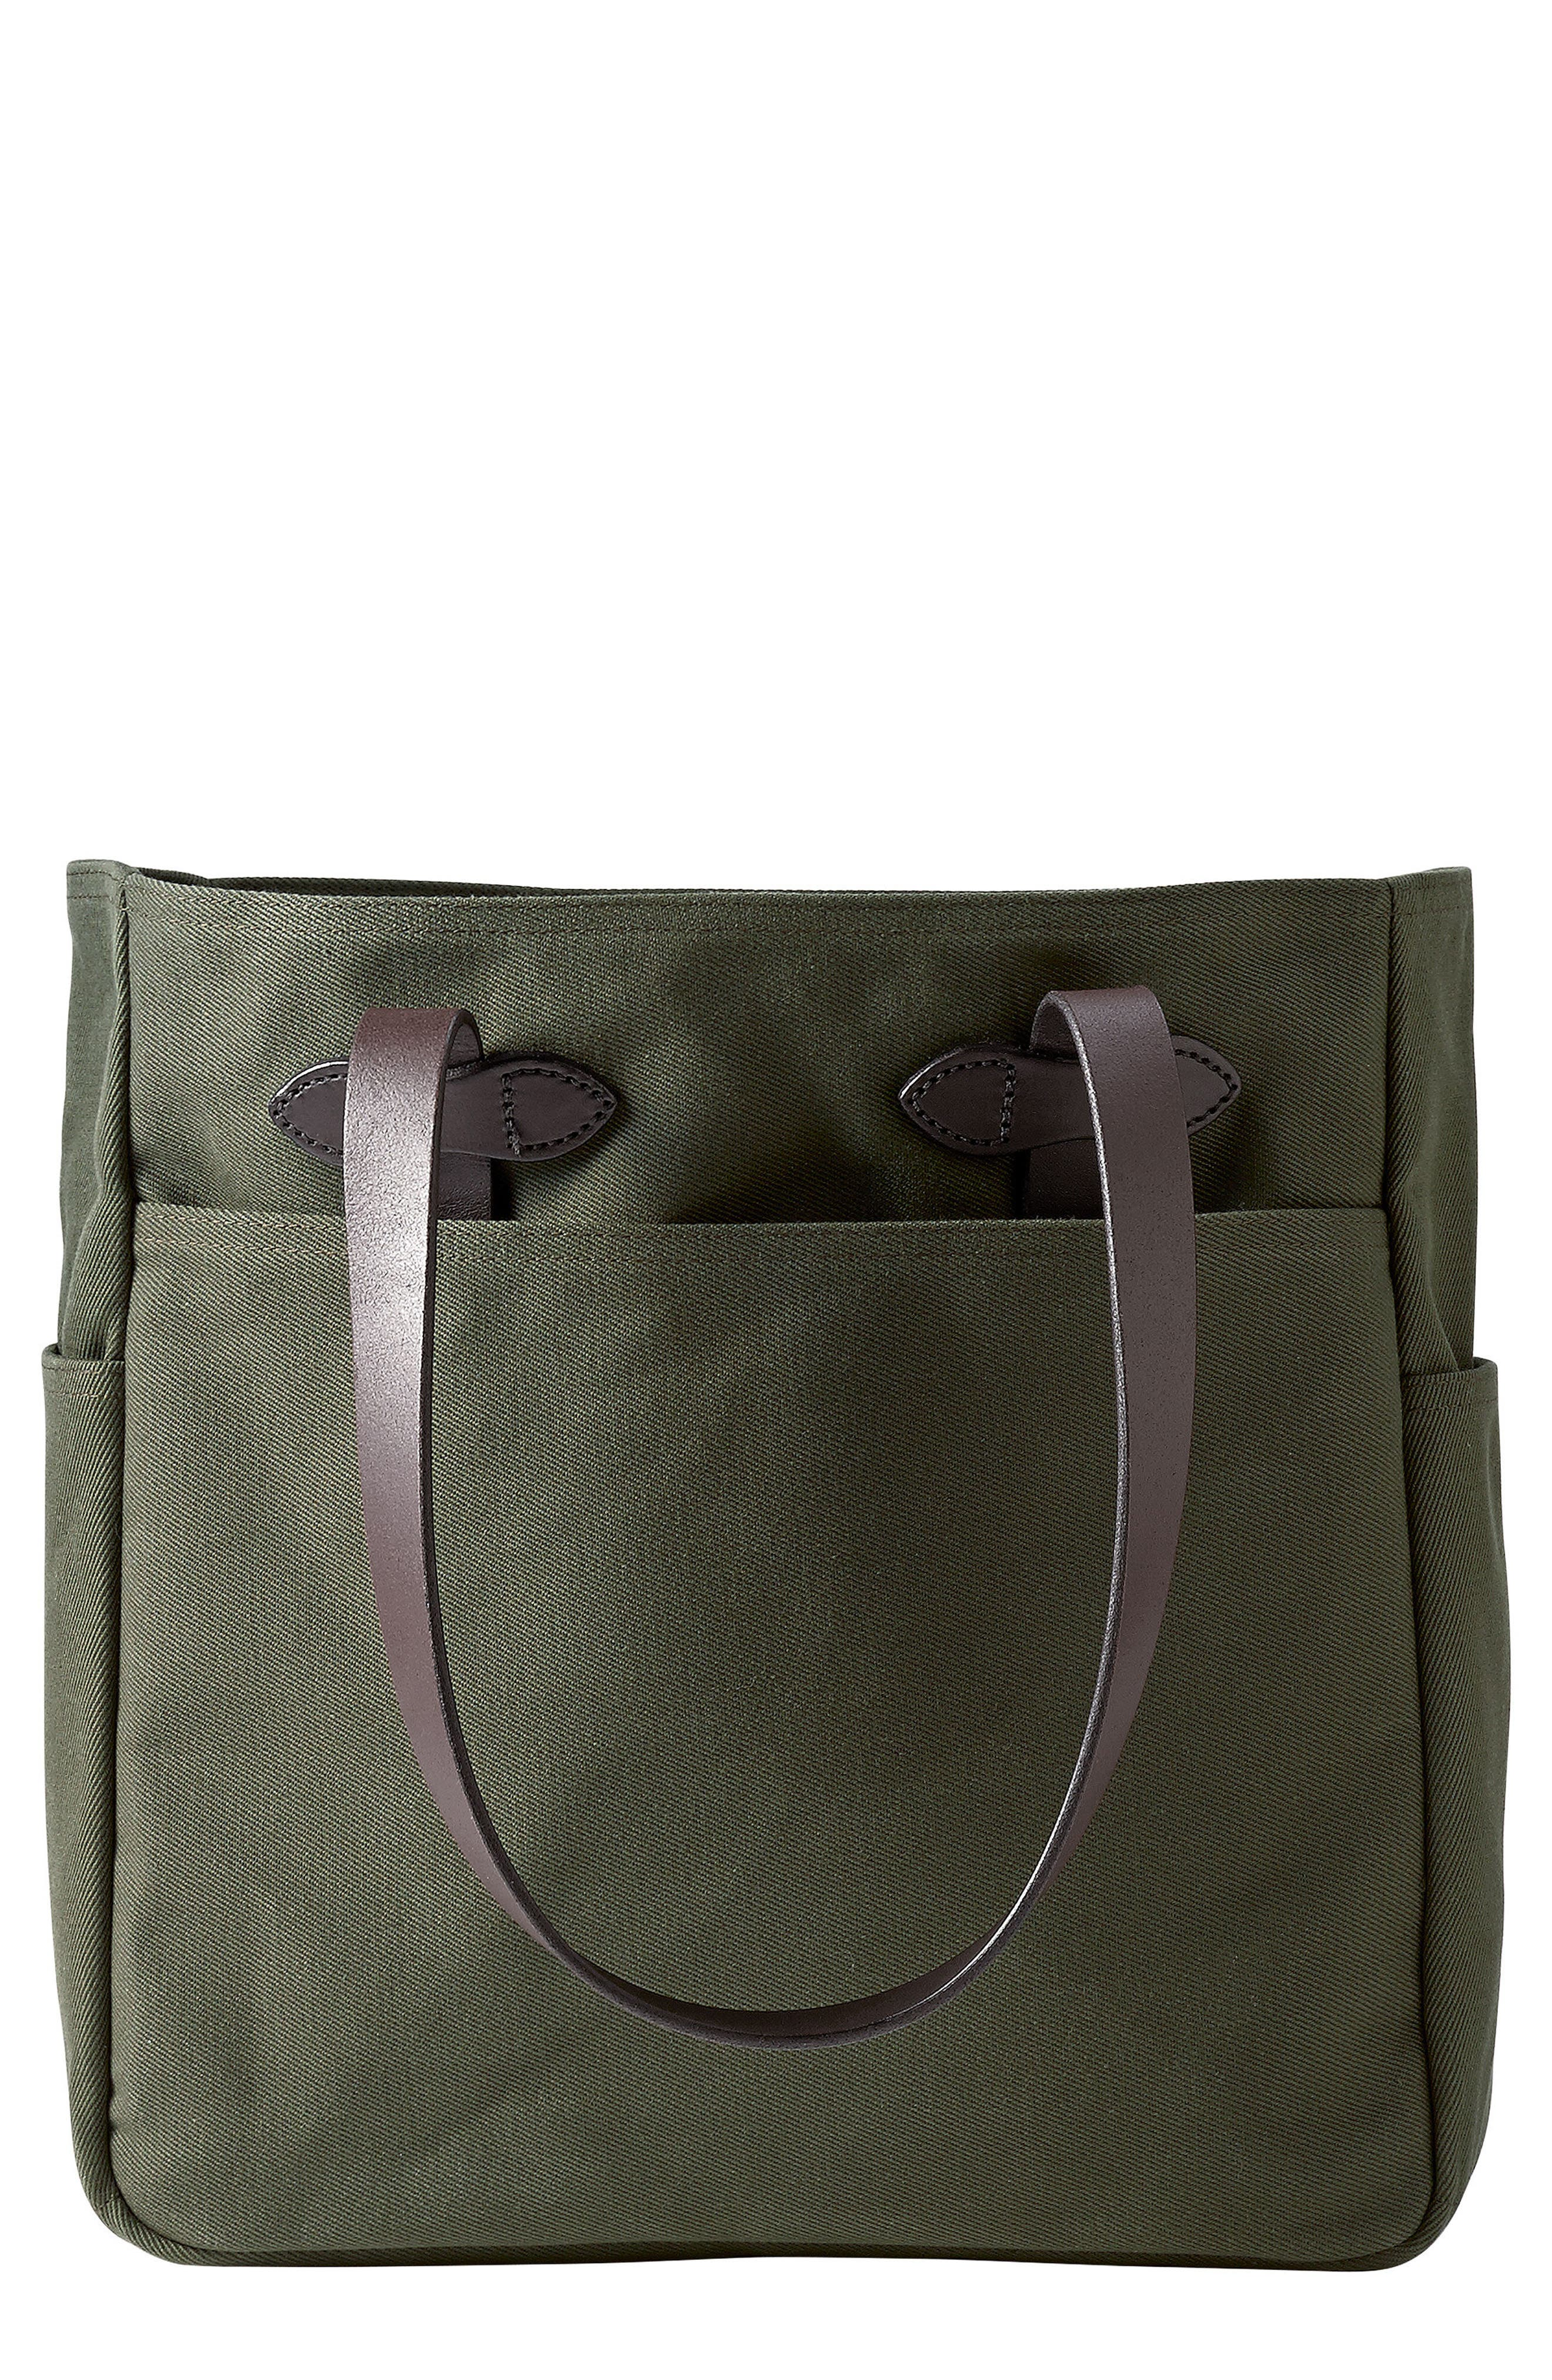 Rugged Twill Tote Bag,                         Main,                         color, OTTER GREEN